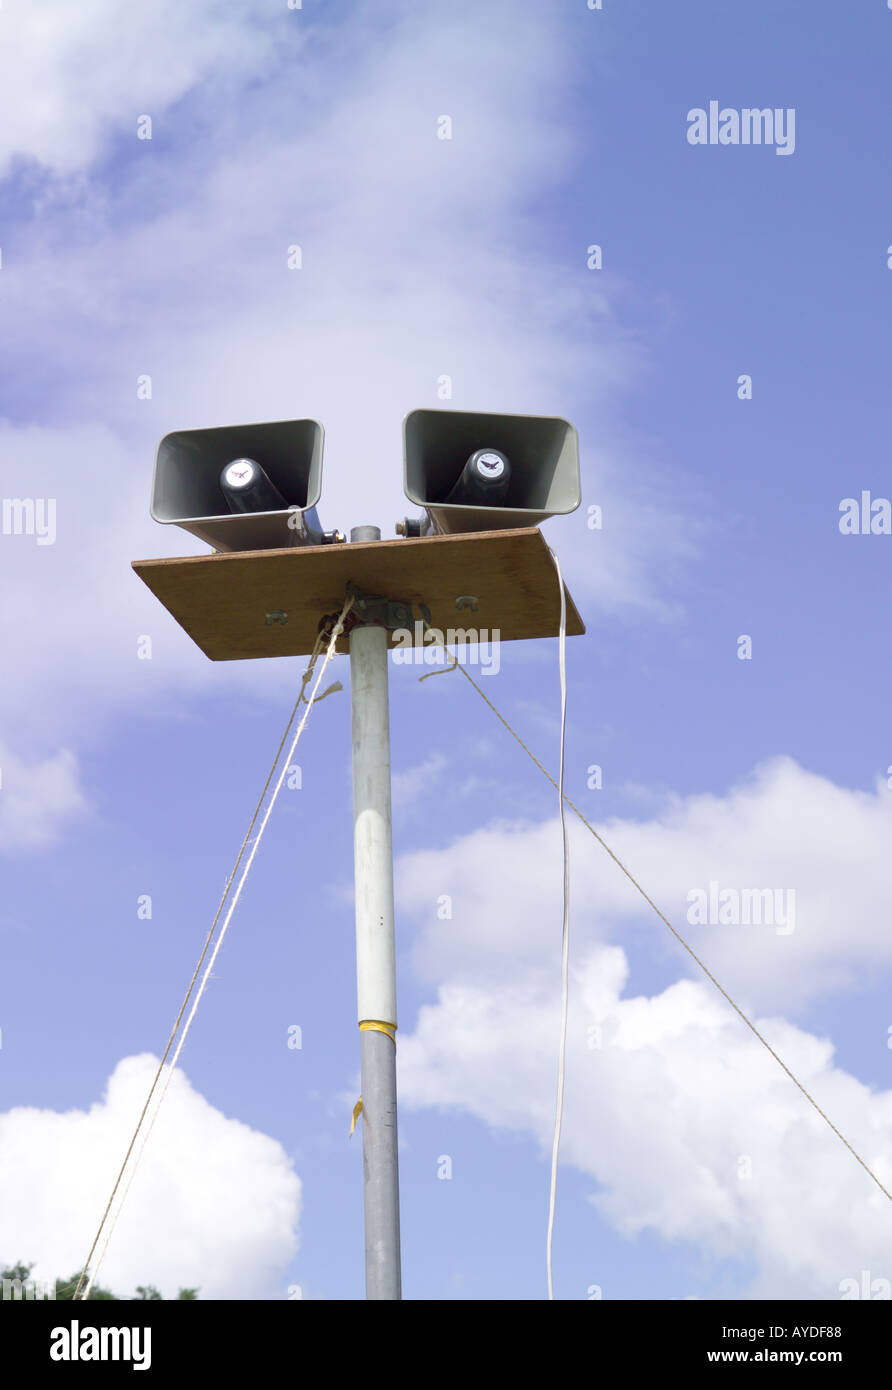 Loudspeakers on a pole with sky in the background at a fete - Stock Image